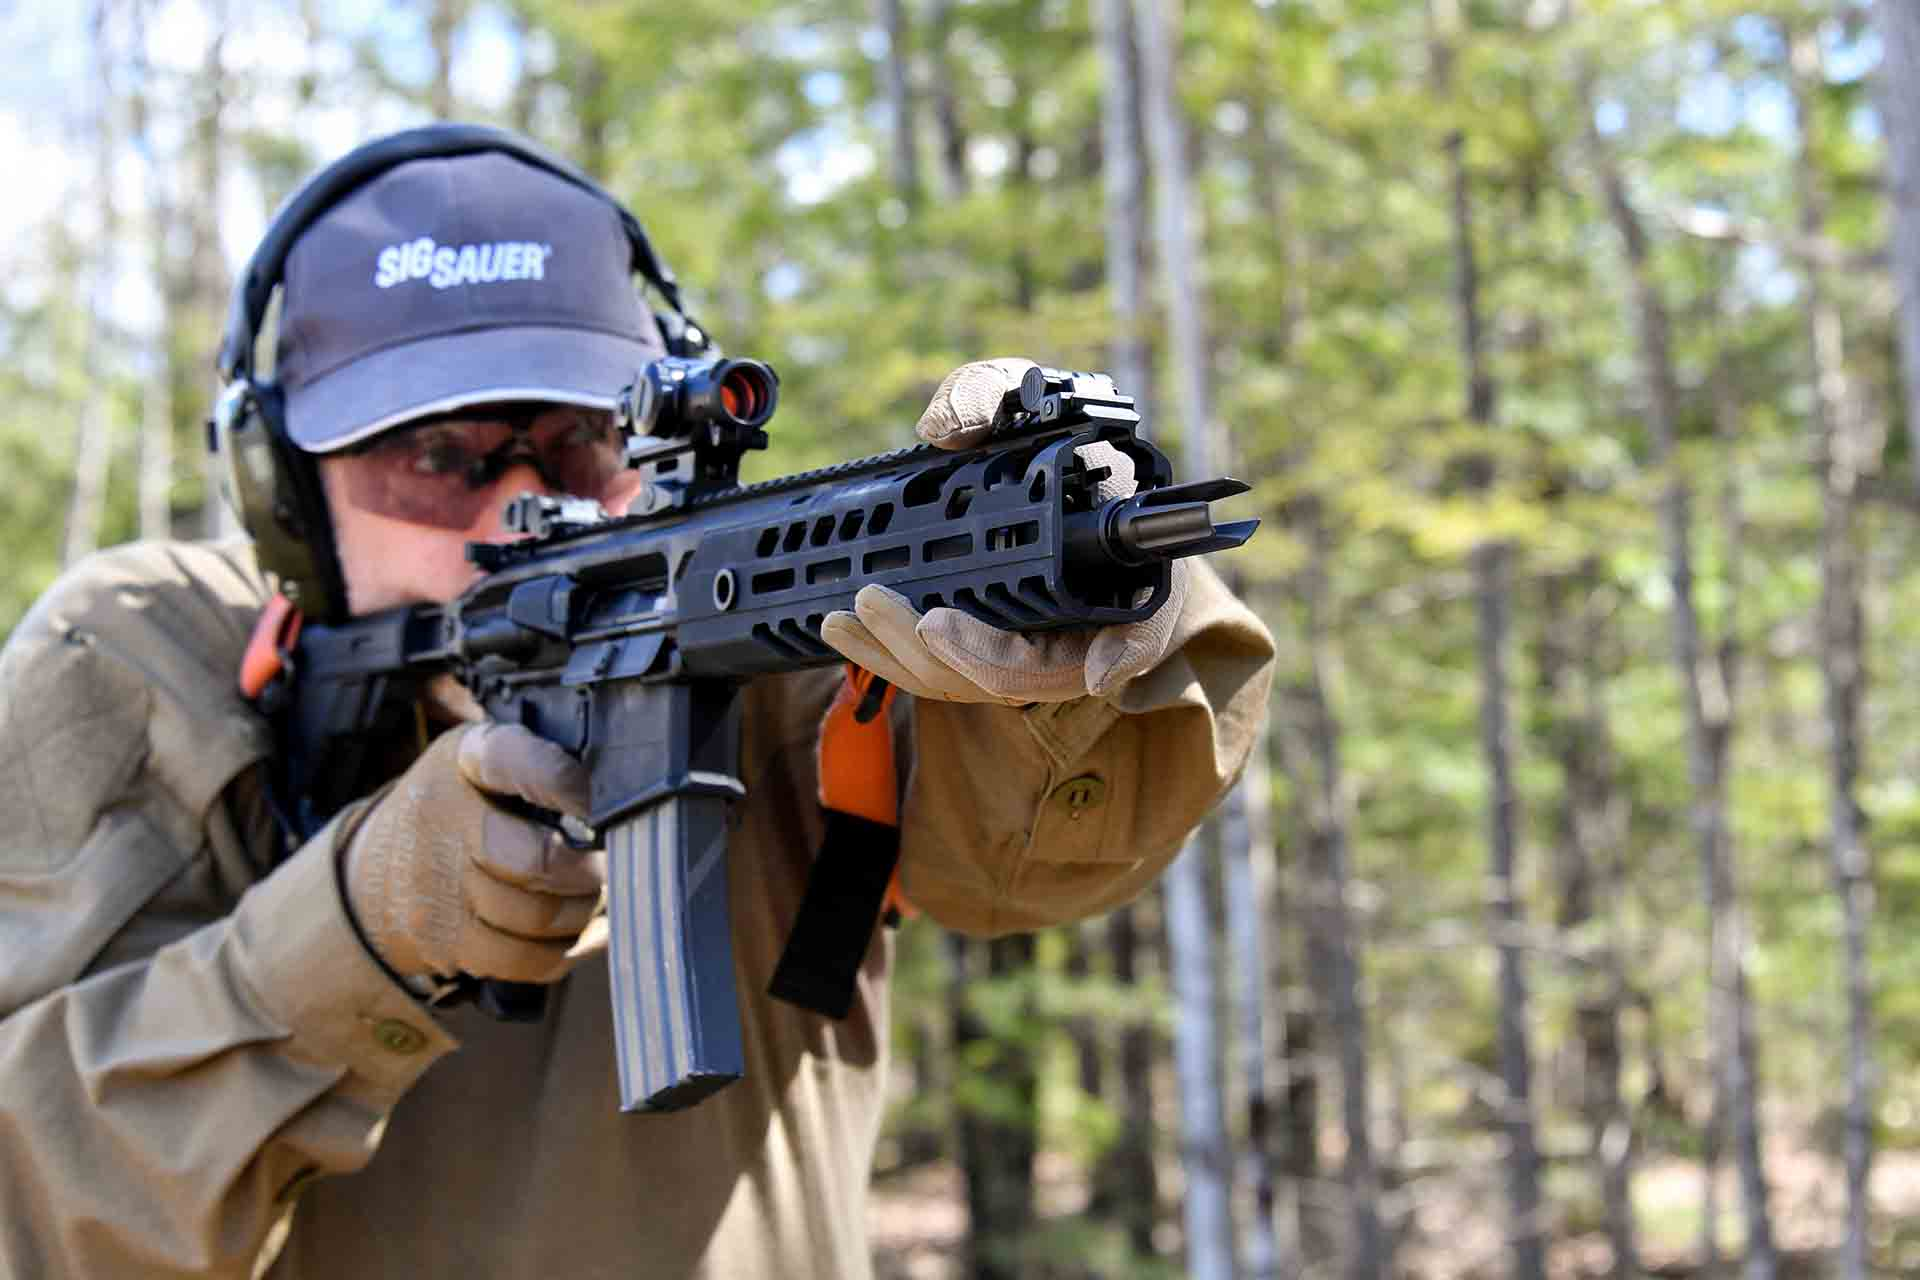 Testing the SIG Sauer MCX Virtus semiautomatic carbine